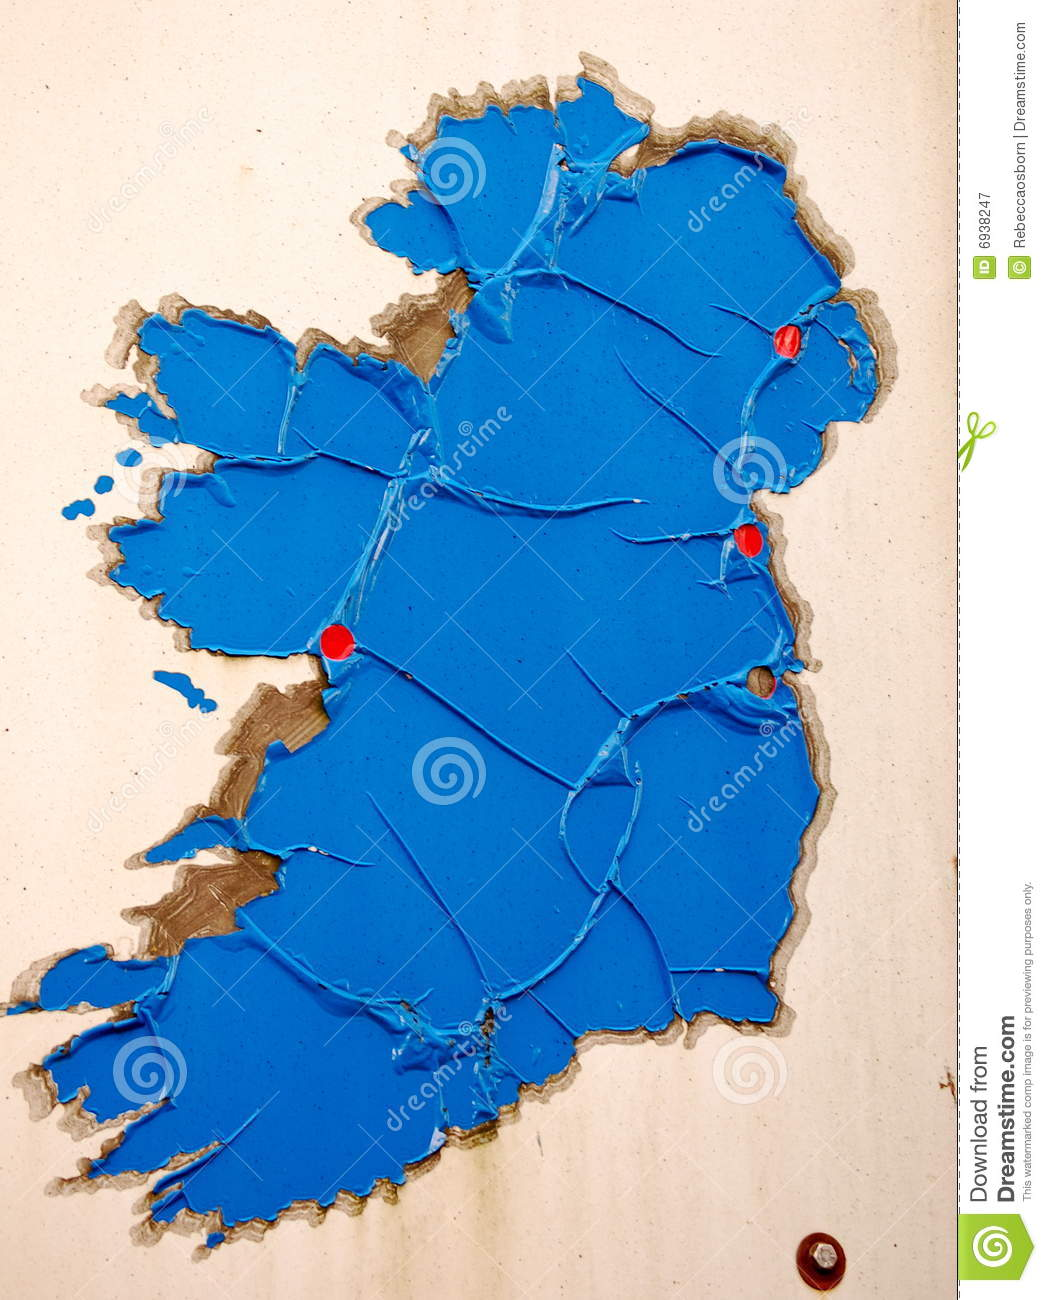 Dundalk Map Of Ireland.A Rusty Map Of Ireland Stock Image Image Of Ancient 6938247